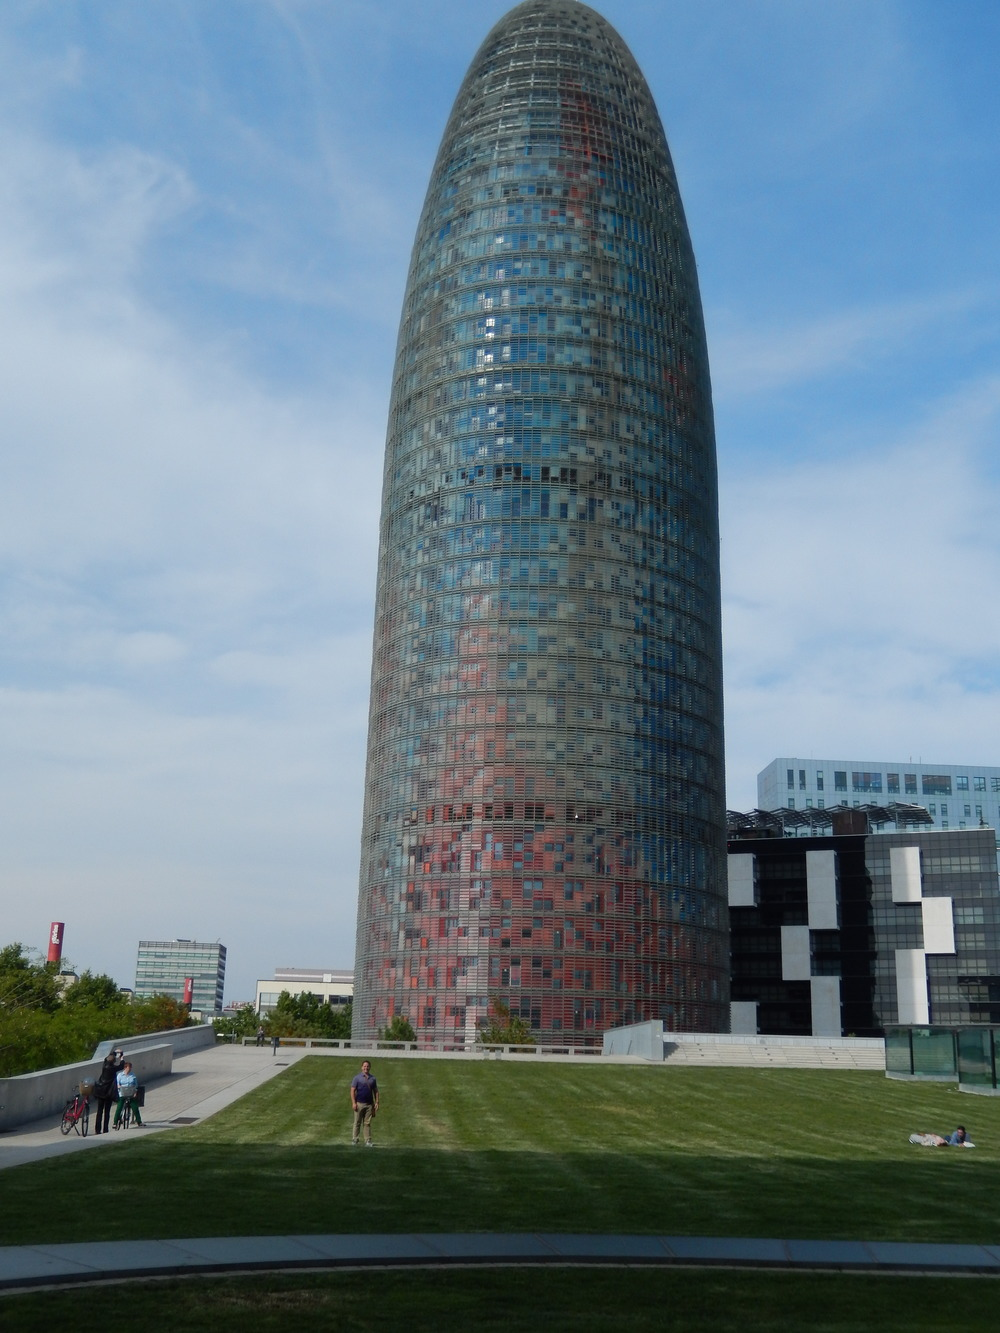 Here's the Torre Agbar, and me in the purple for scale.